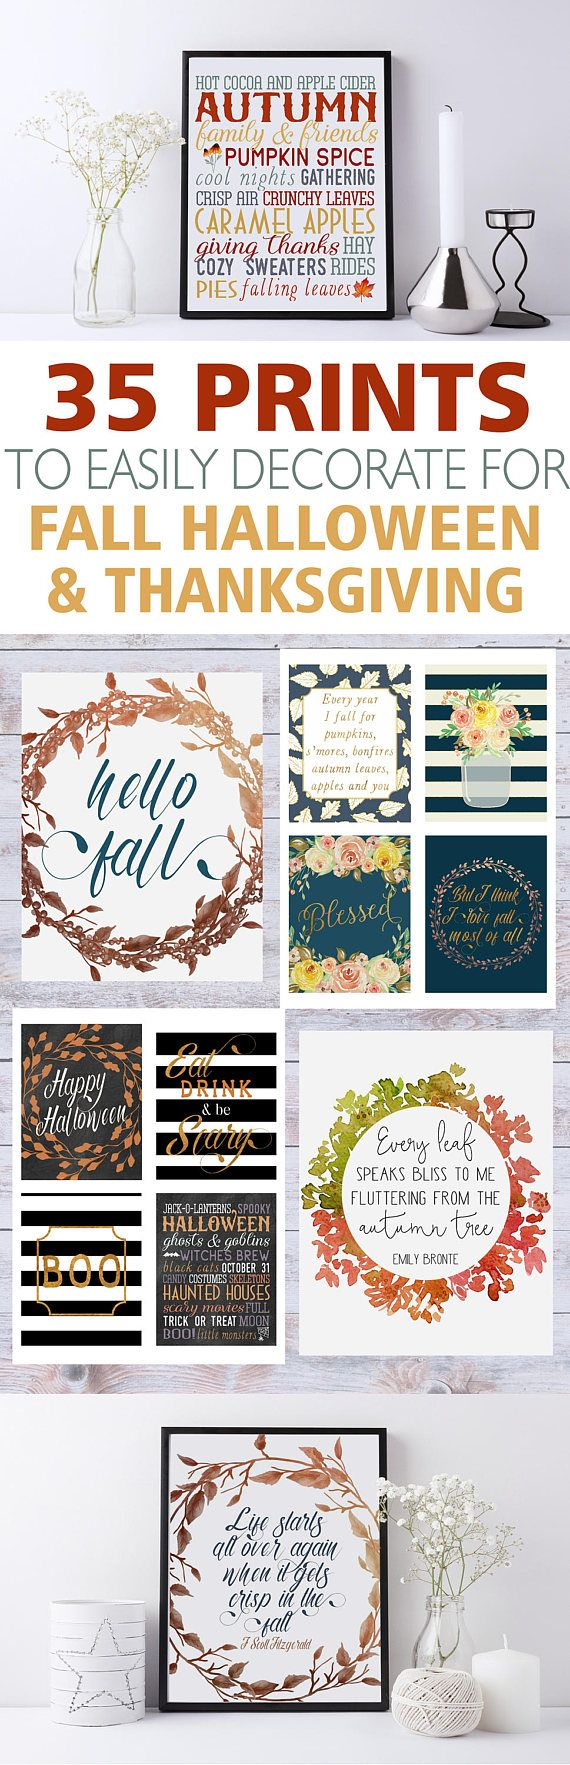 A Gorgeous Fall Printable Wall Art Bundle To Decorate For Thanksgiving Halloween & Autumn